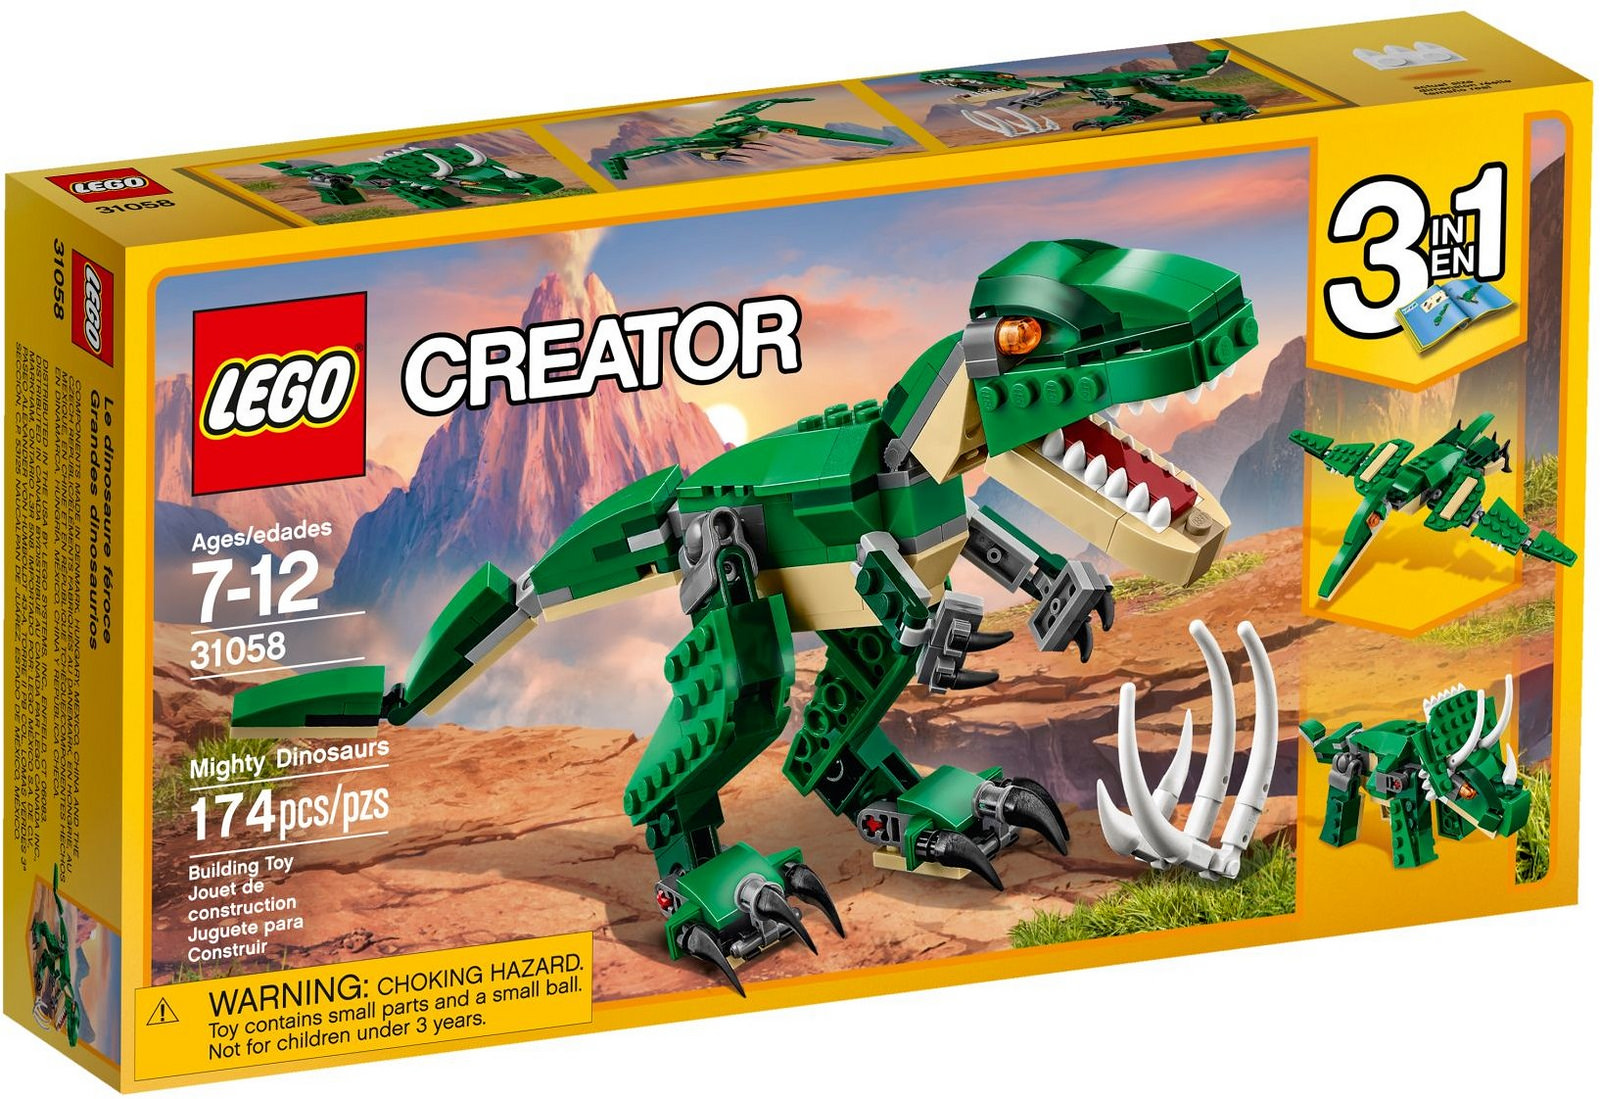 cc21d4778aa Five new 2017 LEGO Creator 3-in-1 sets revealed [News] | The ...